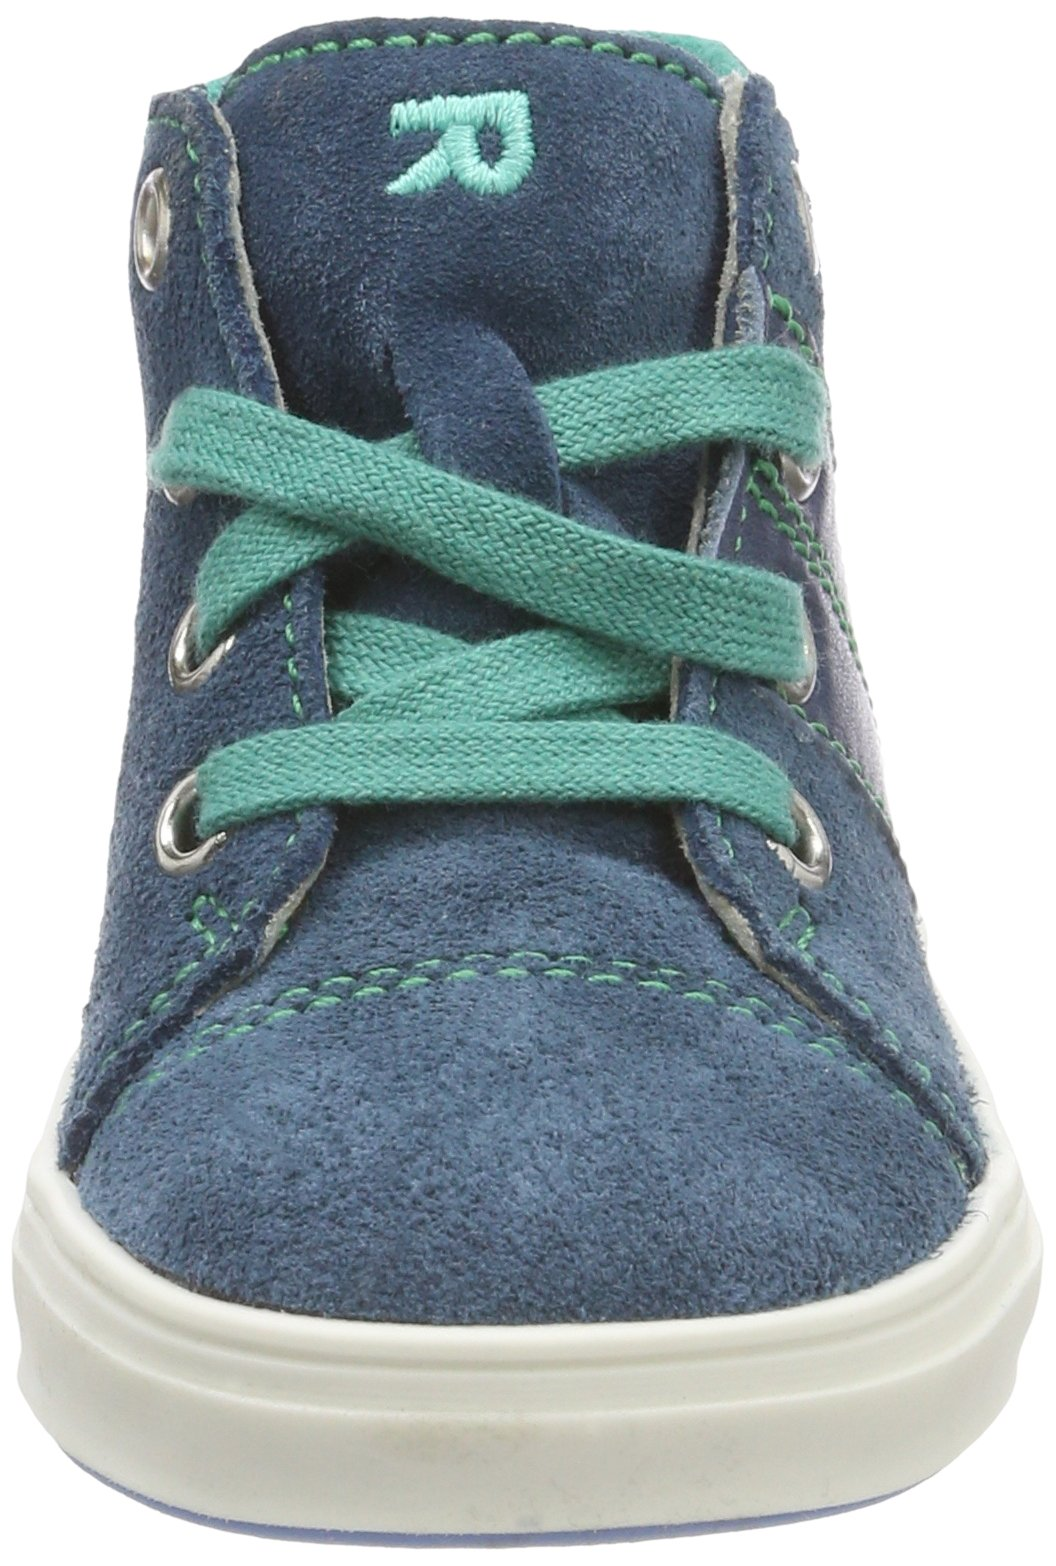 Richter Kinderschuhe Boys' Jimmy Derbys, Blue (Pacific/Menta 6701), 7.5 UK by Richter Kinderschuhe (Image #4)